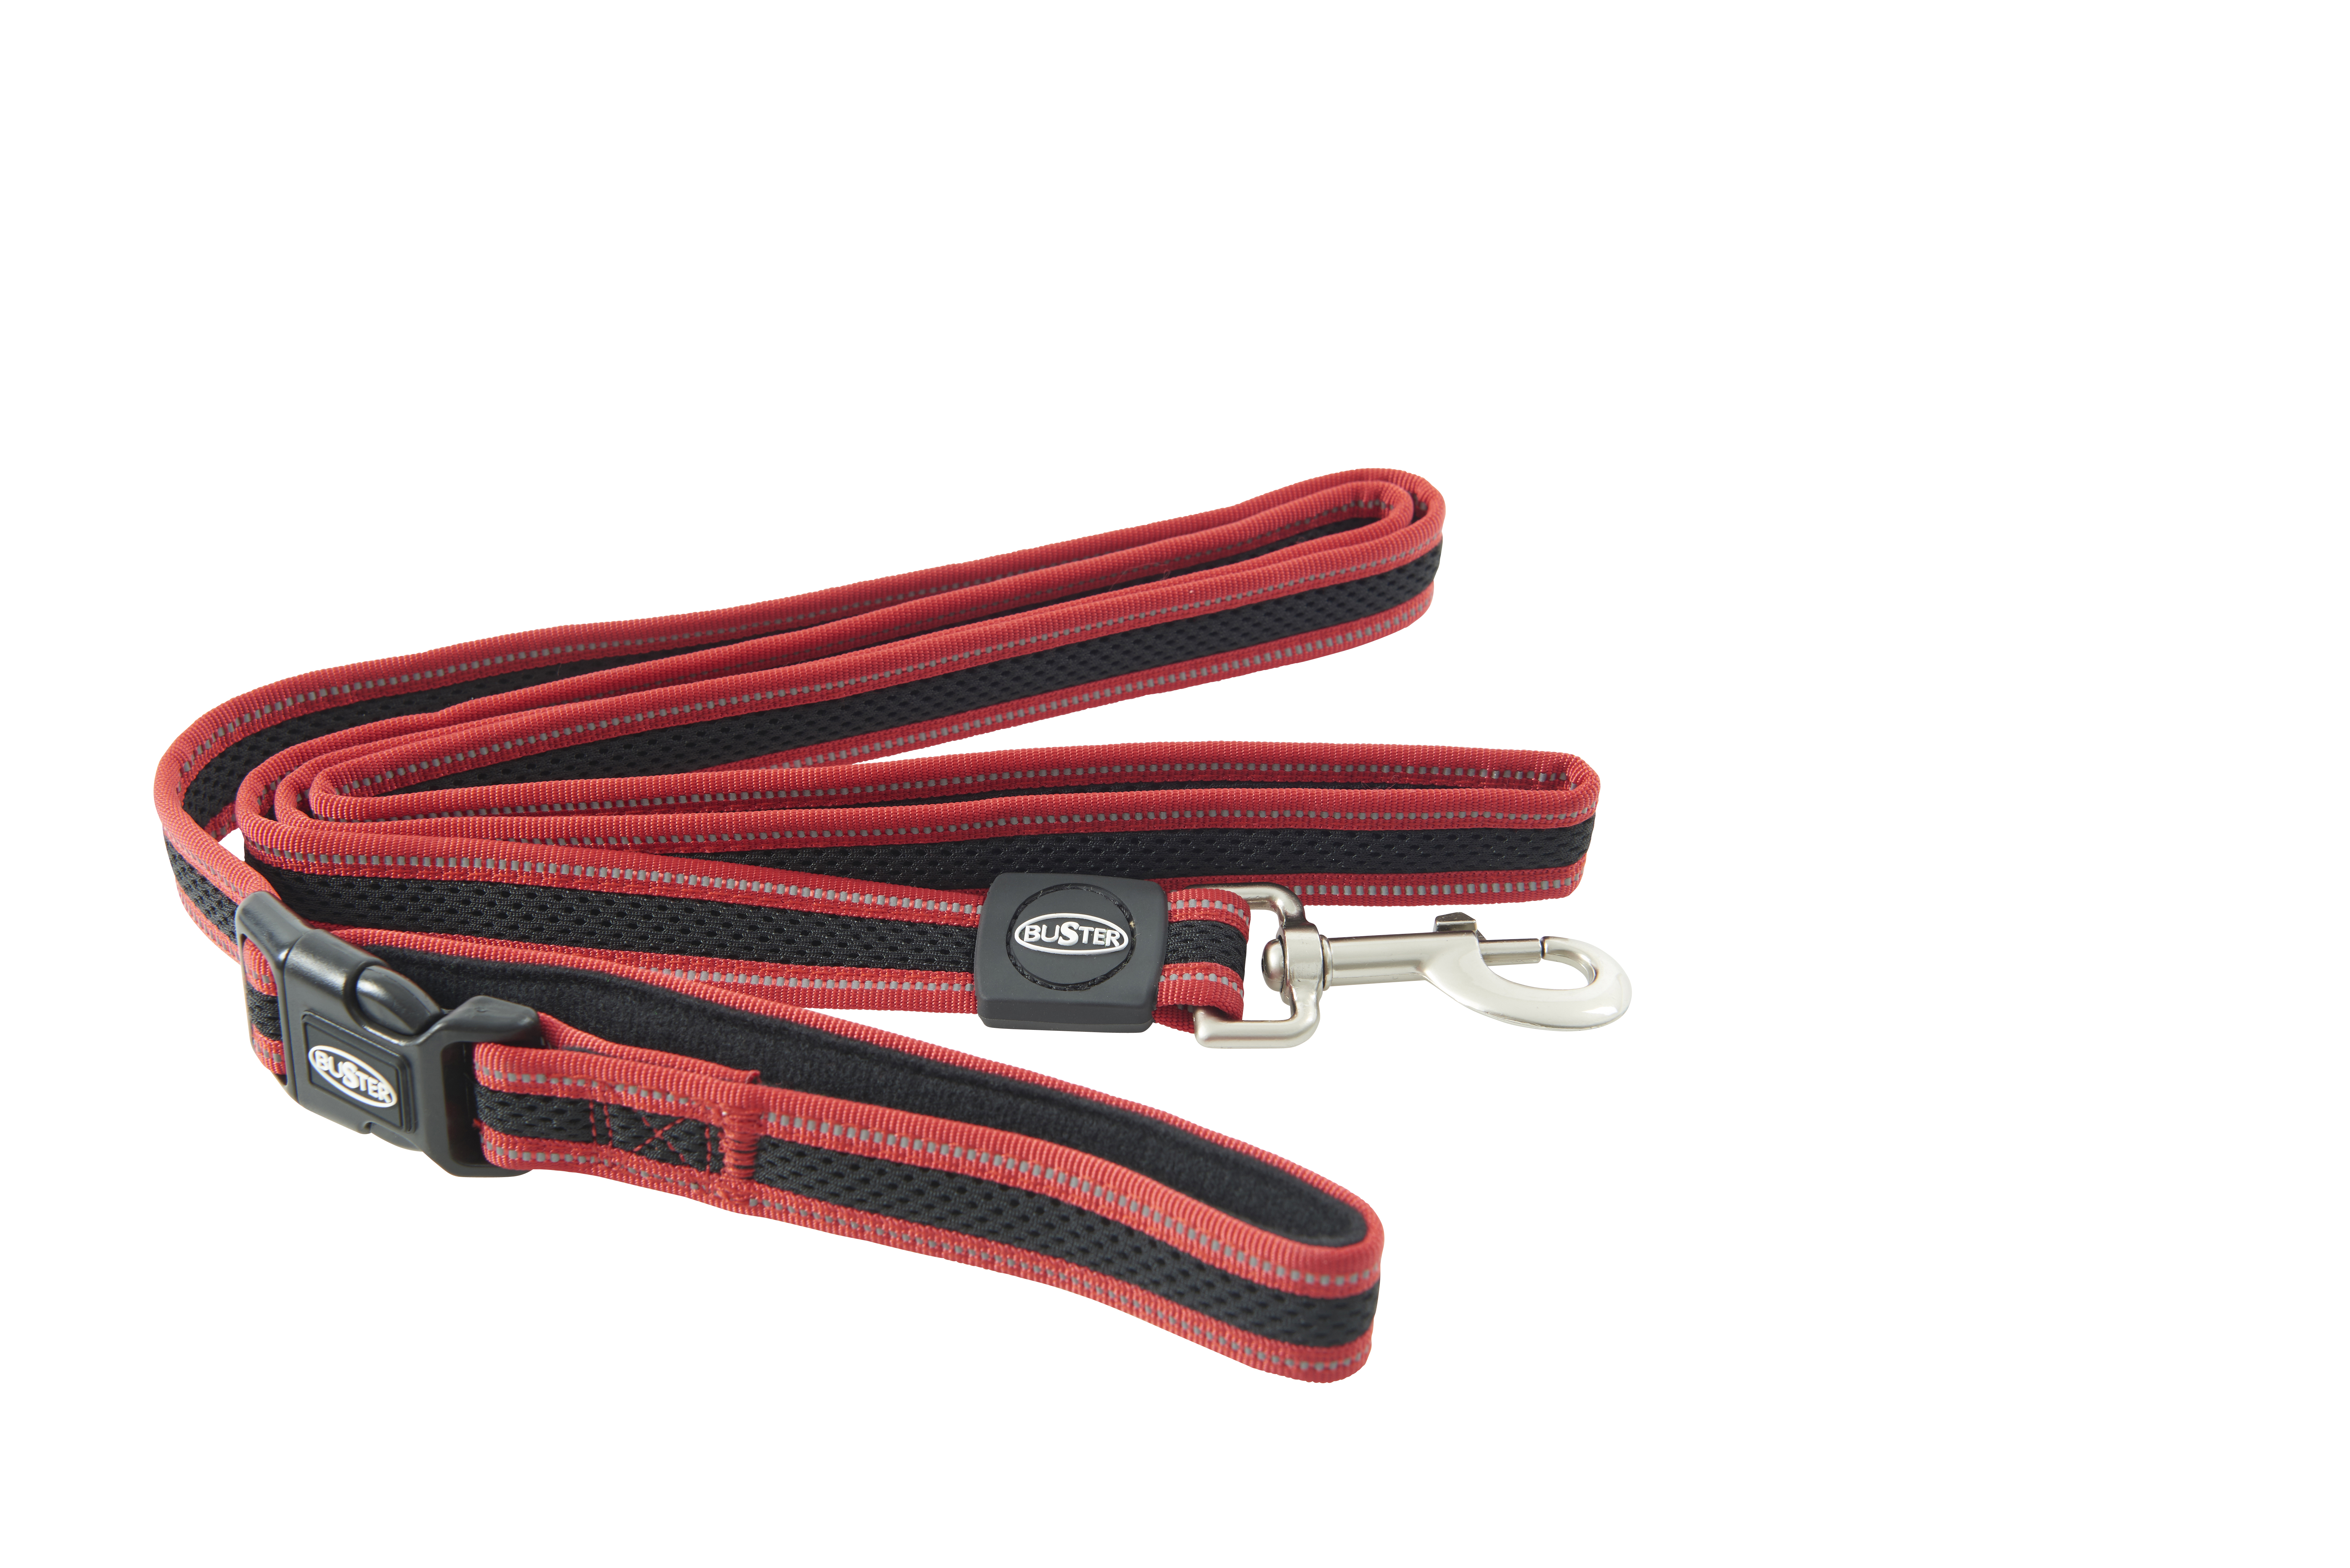 BUSTER Reflective Mesh 180 cm Lead, Red/Red, L/XL, 25mm